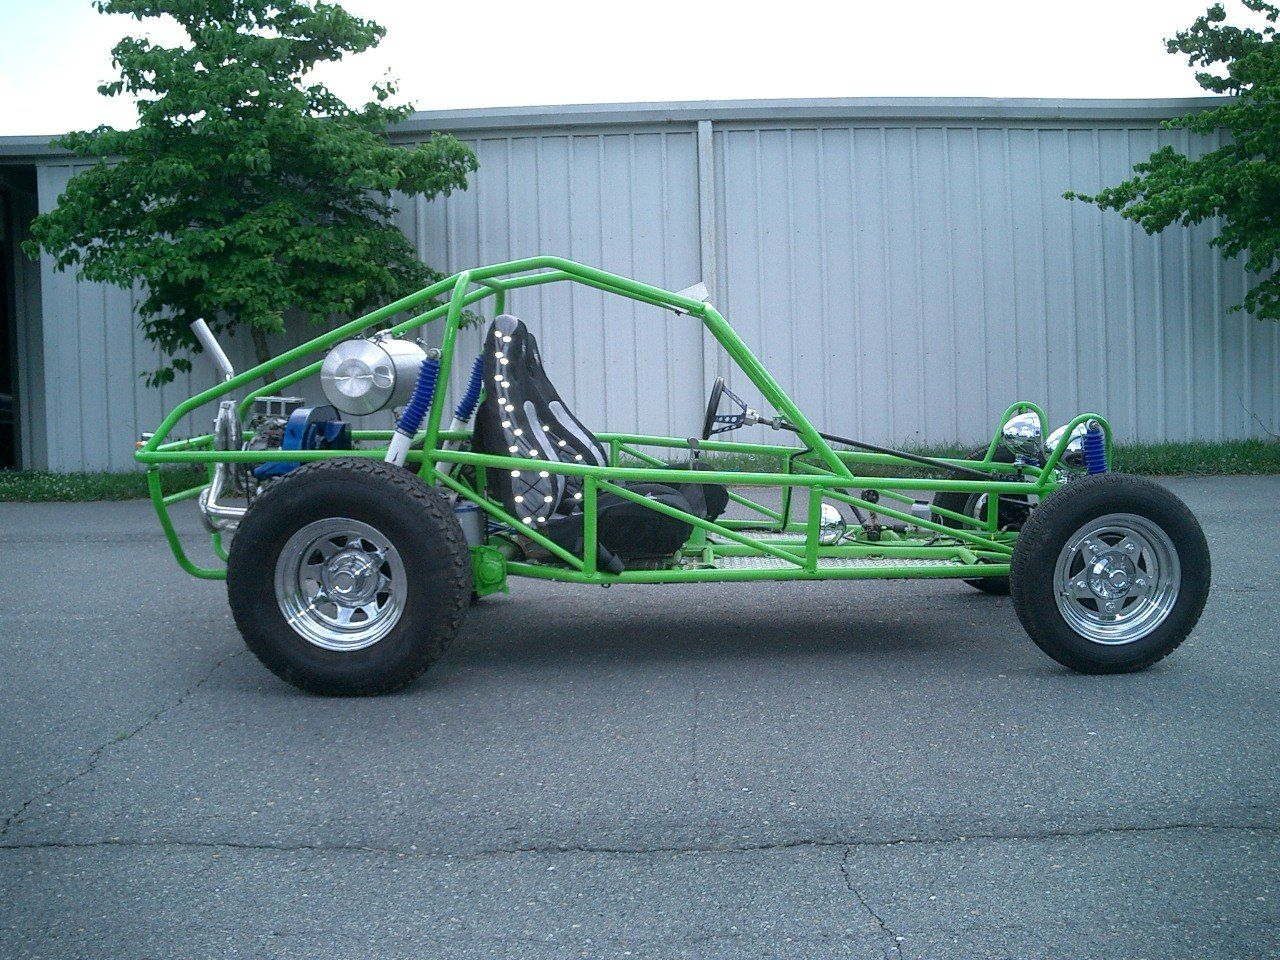 Vw Sand Rail Wiring Diagram Hitachi Nail Gun Parts Dune Buggy Buggys Pinterest And